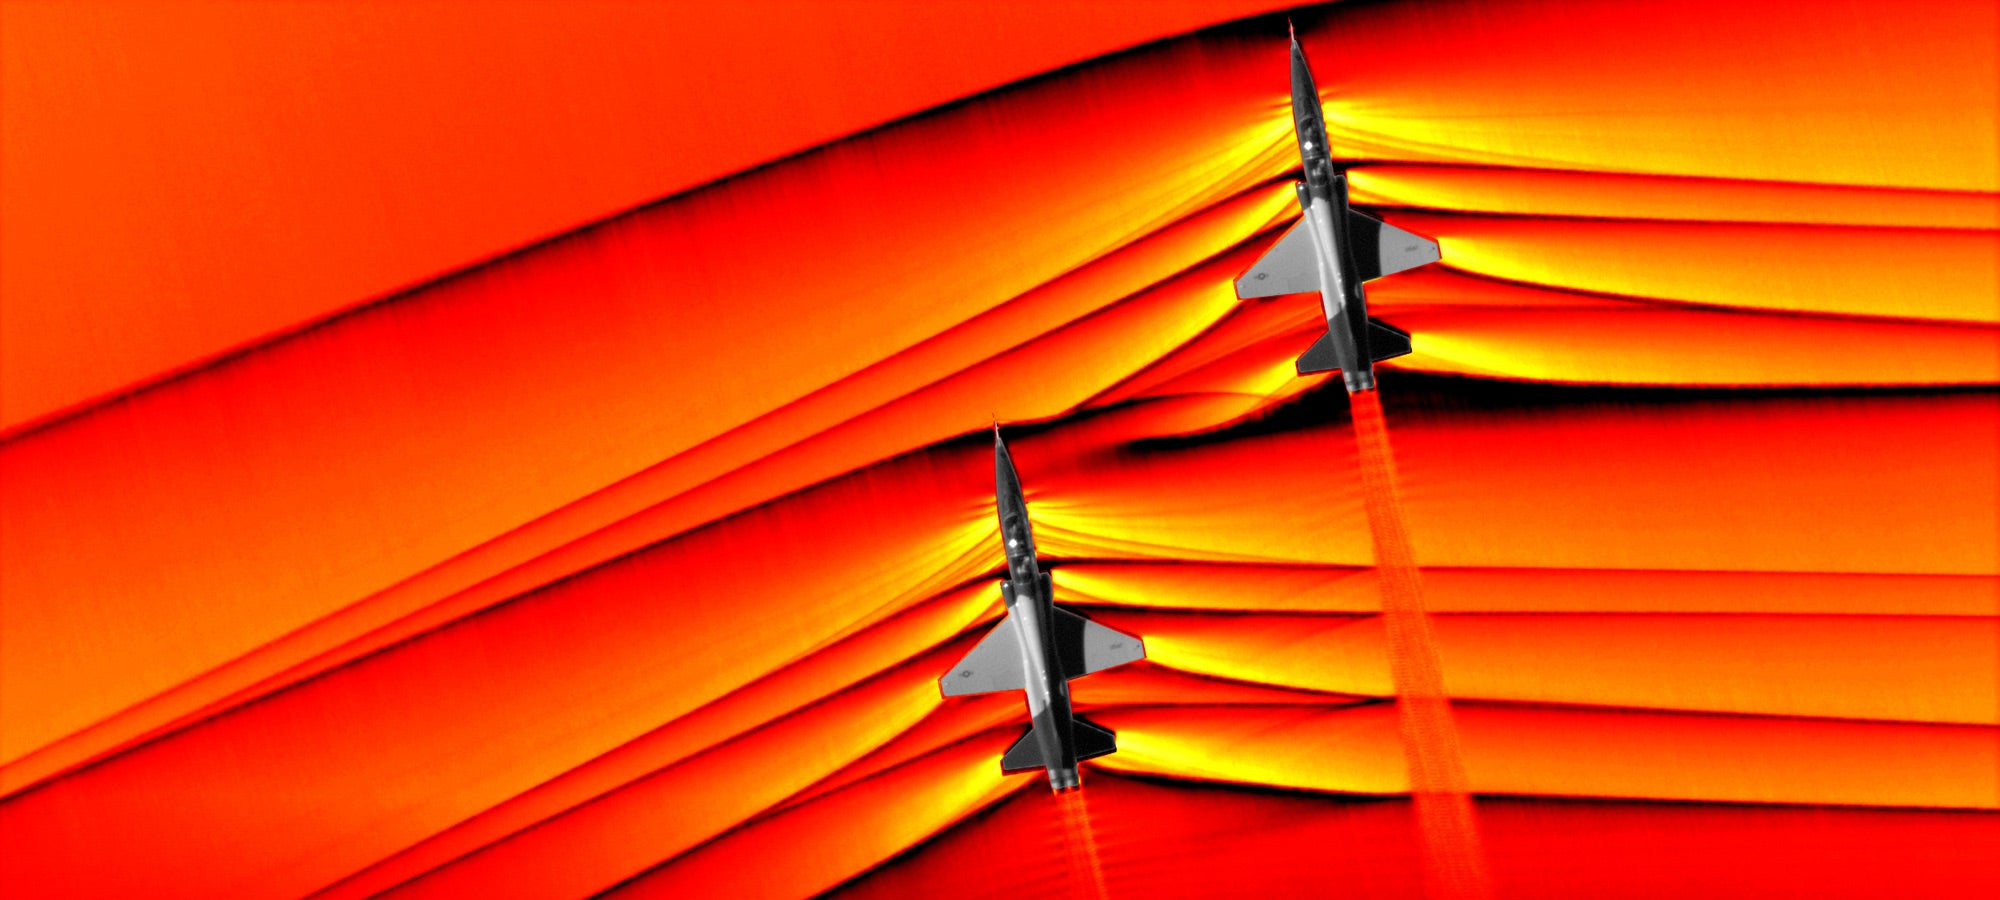 This is what a sonic boom looks like